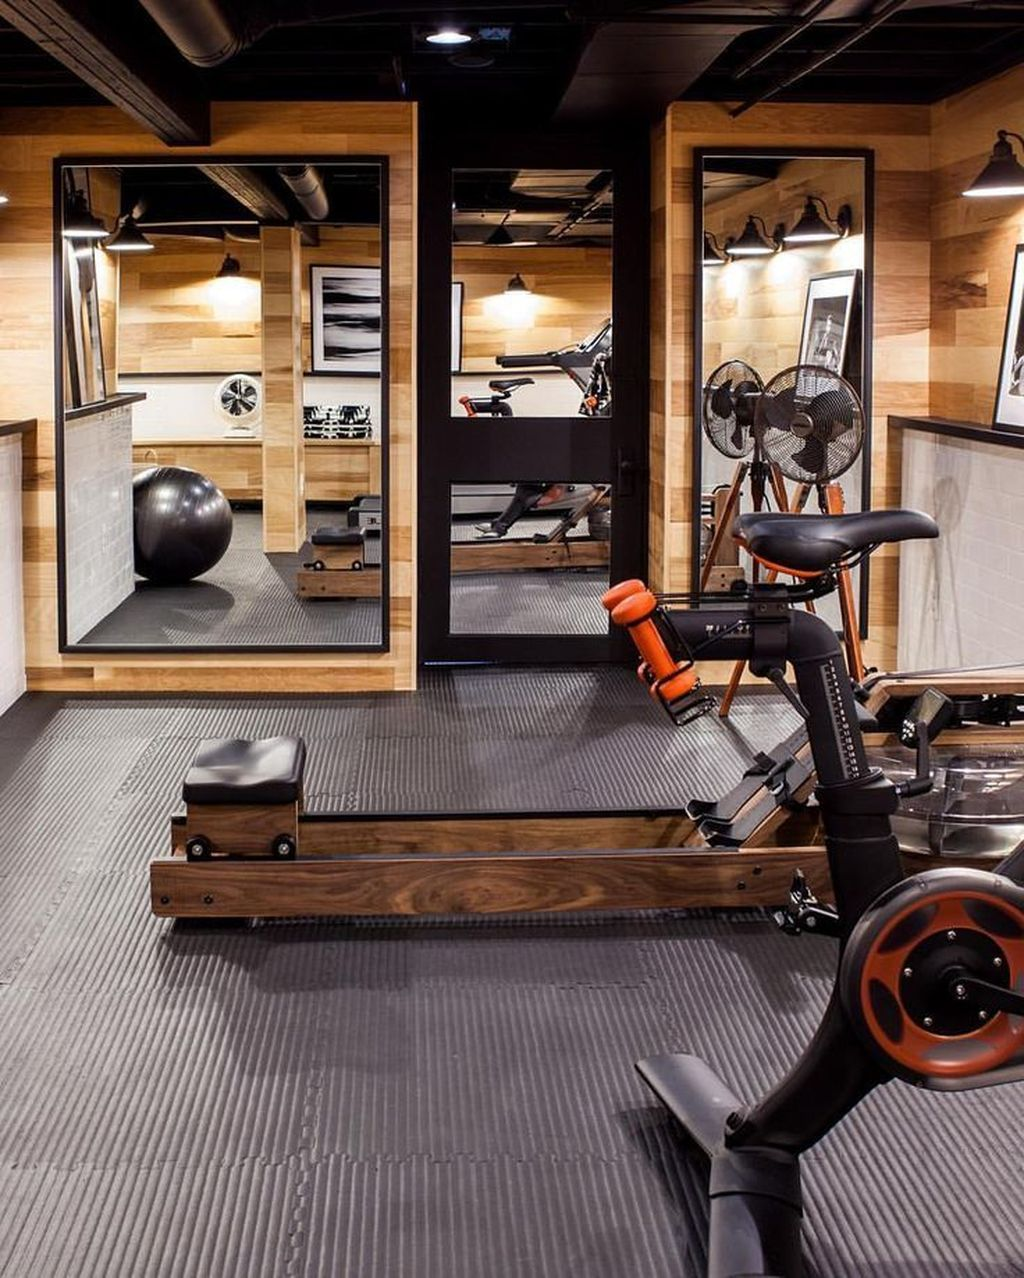 35 Nice Home Gym Design And Decor Ideas In 2020